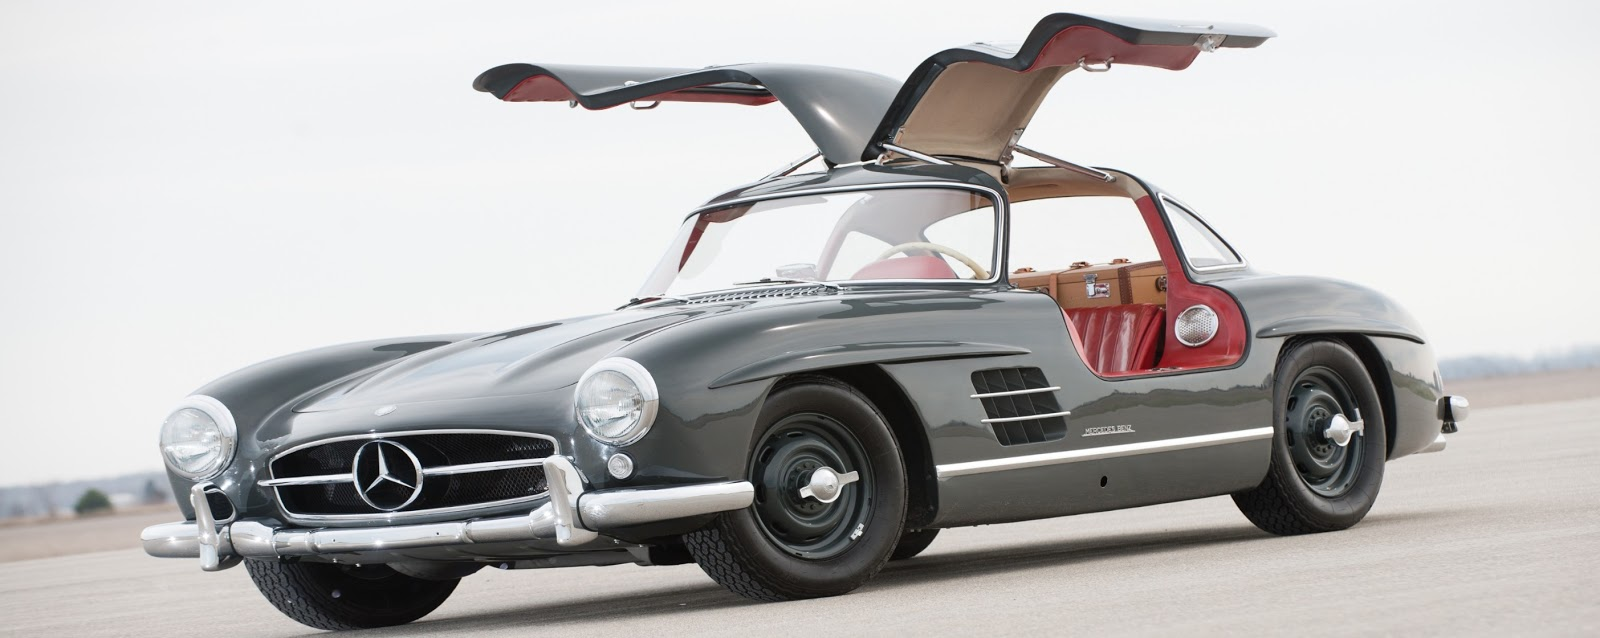 1955 mercedes benz 300sl gullwing. Black Bedroom Furniture Sets. Home Design Ideas